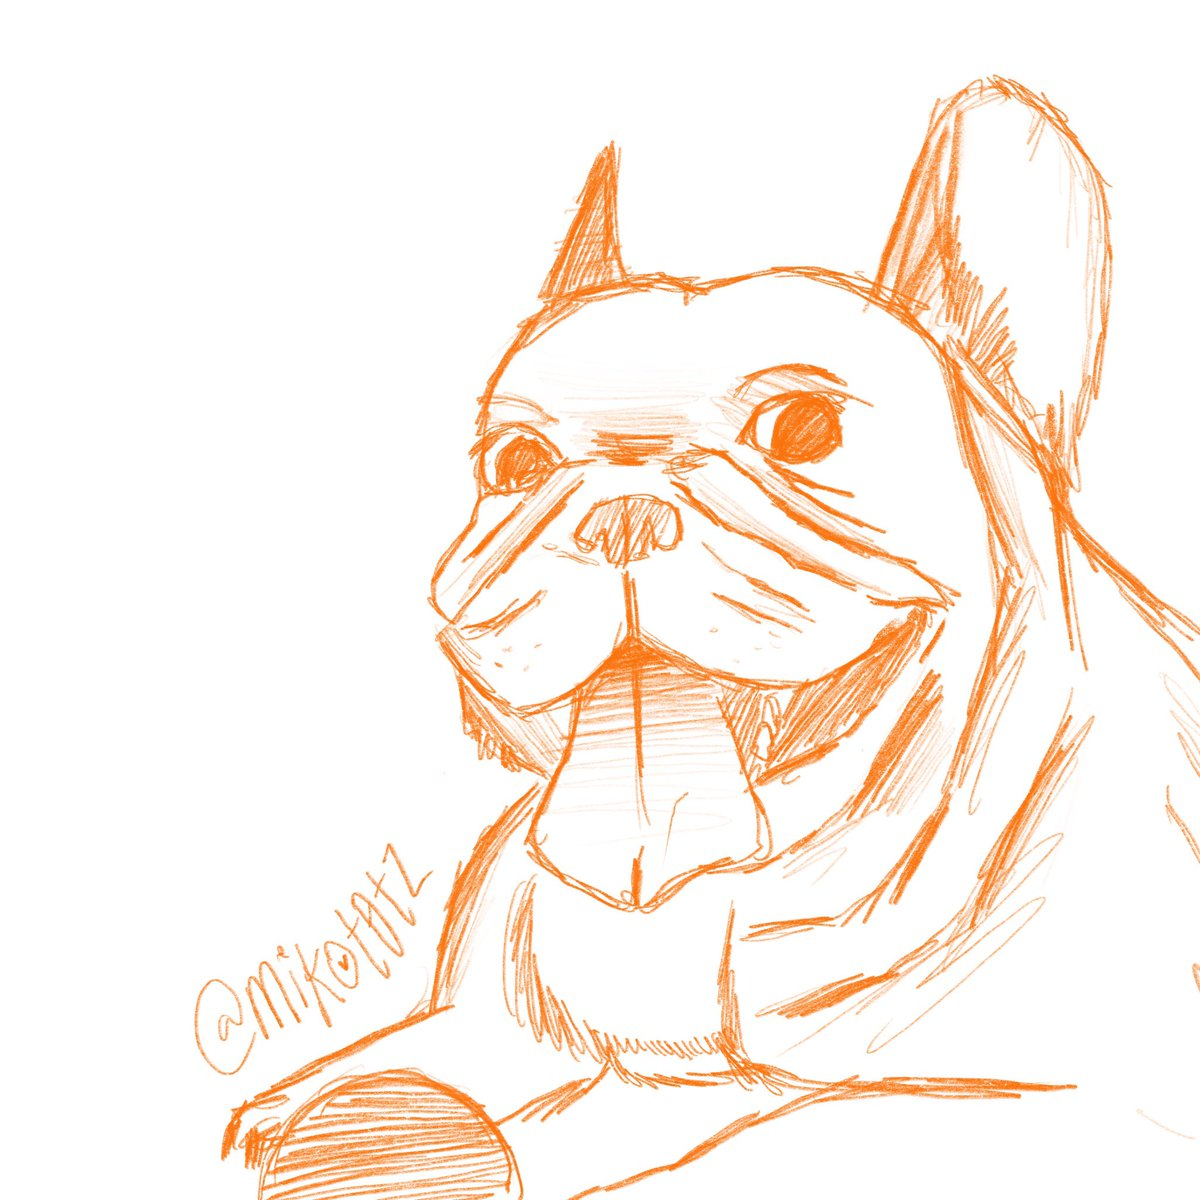 of course my first art post has to be my doggo, fynn #frenchbulldog #artistsoninstagram<br>http://pic.twitter.com/mmM4BGIrlK